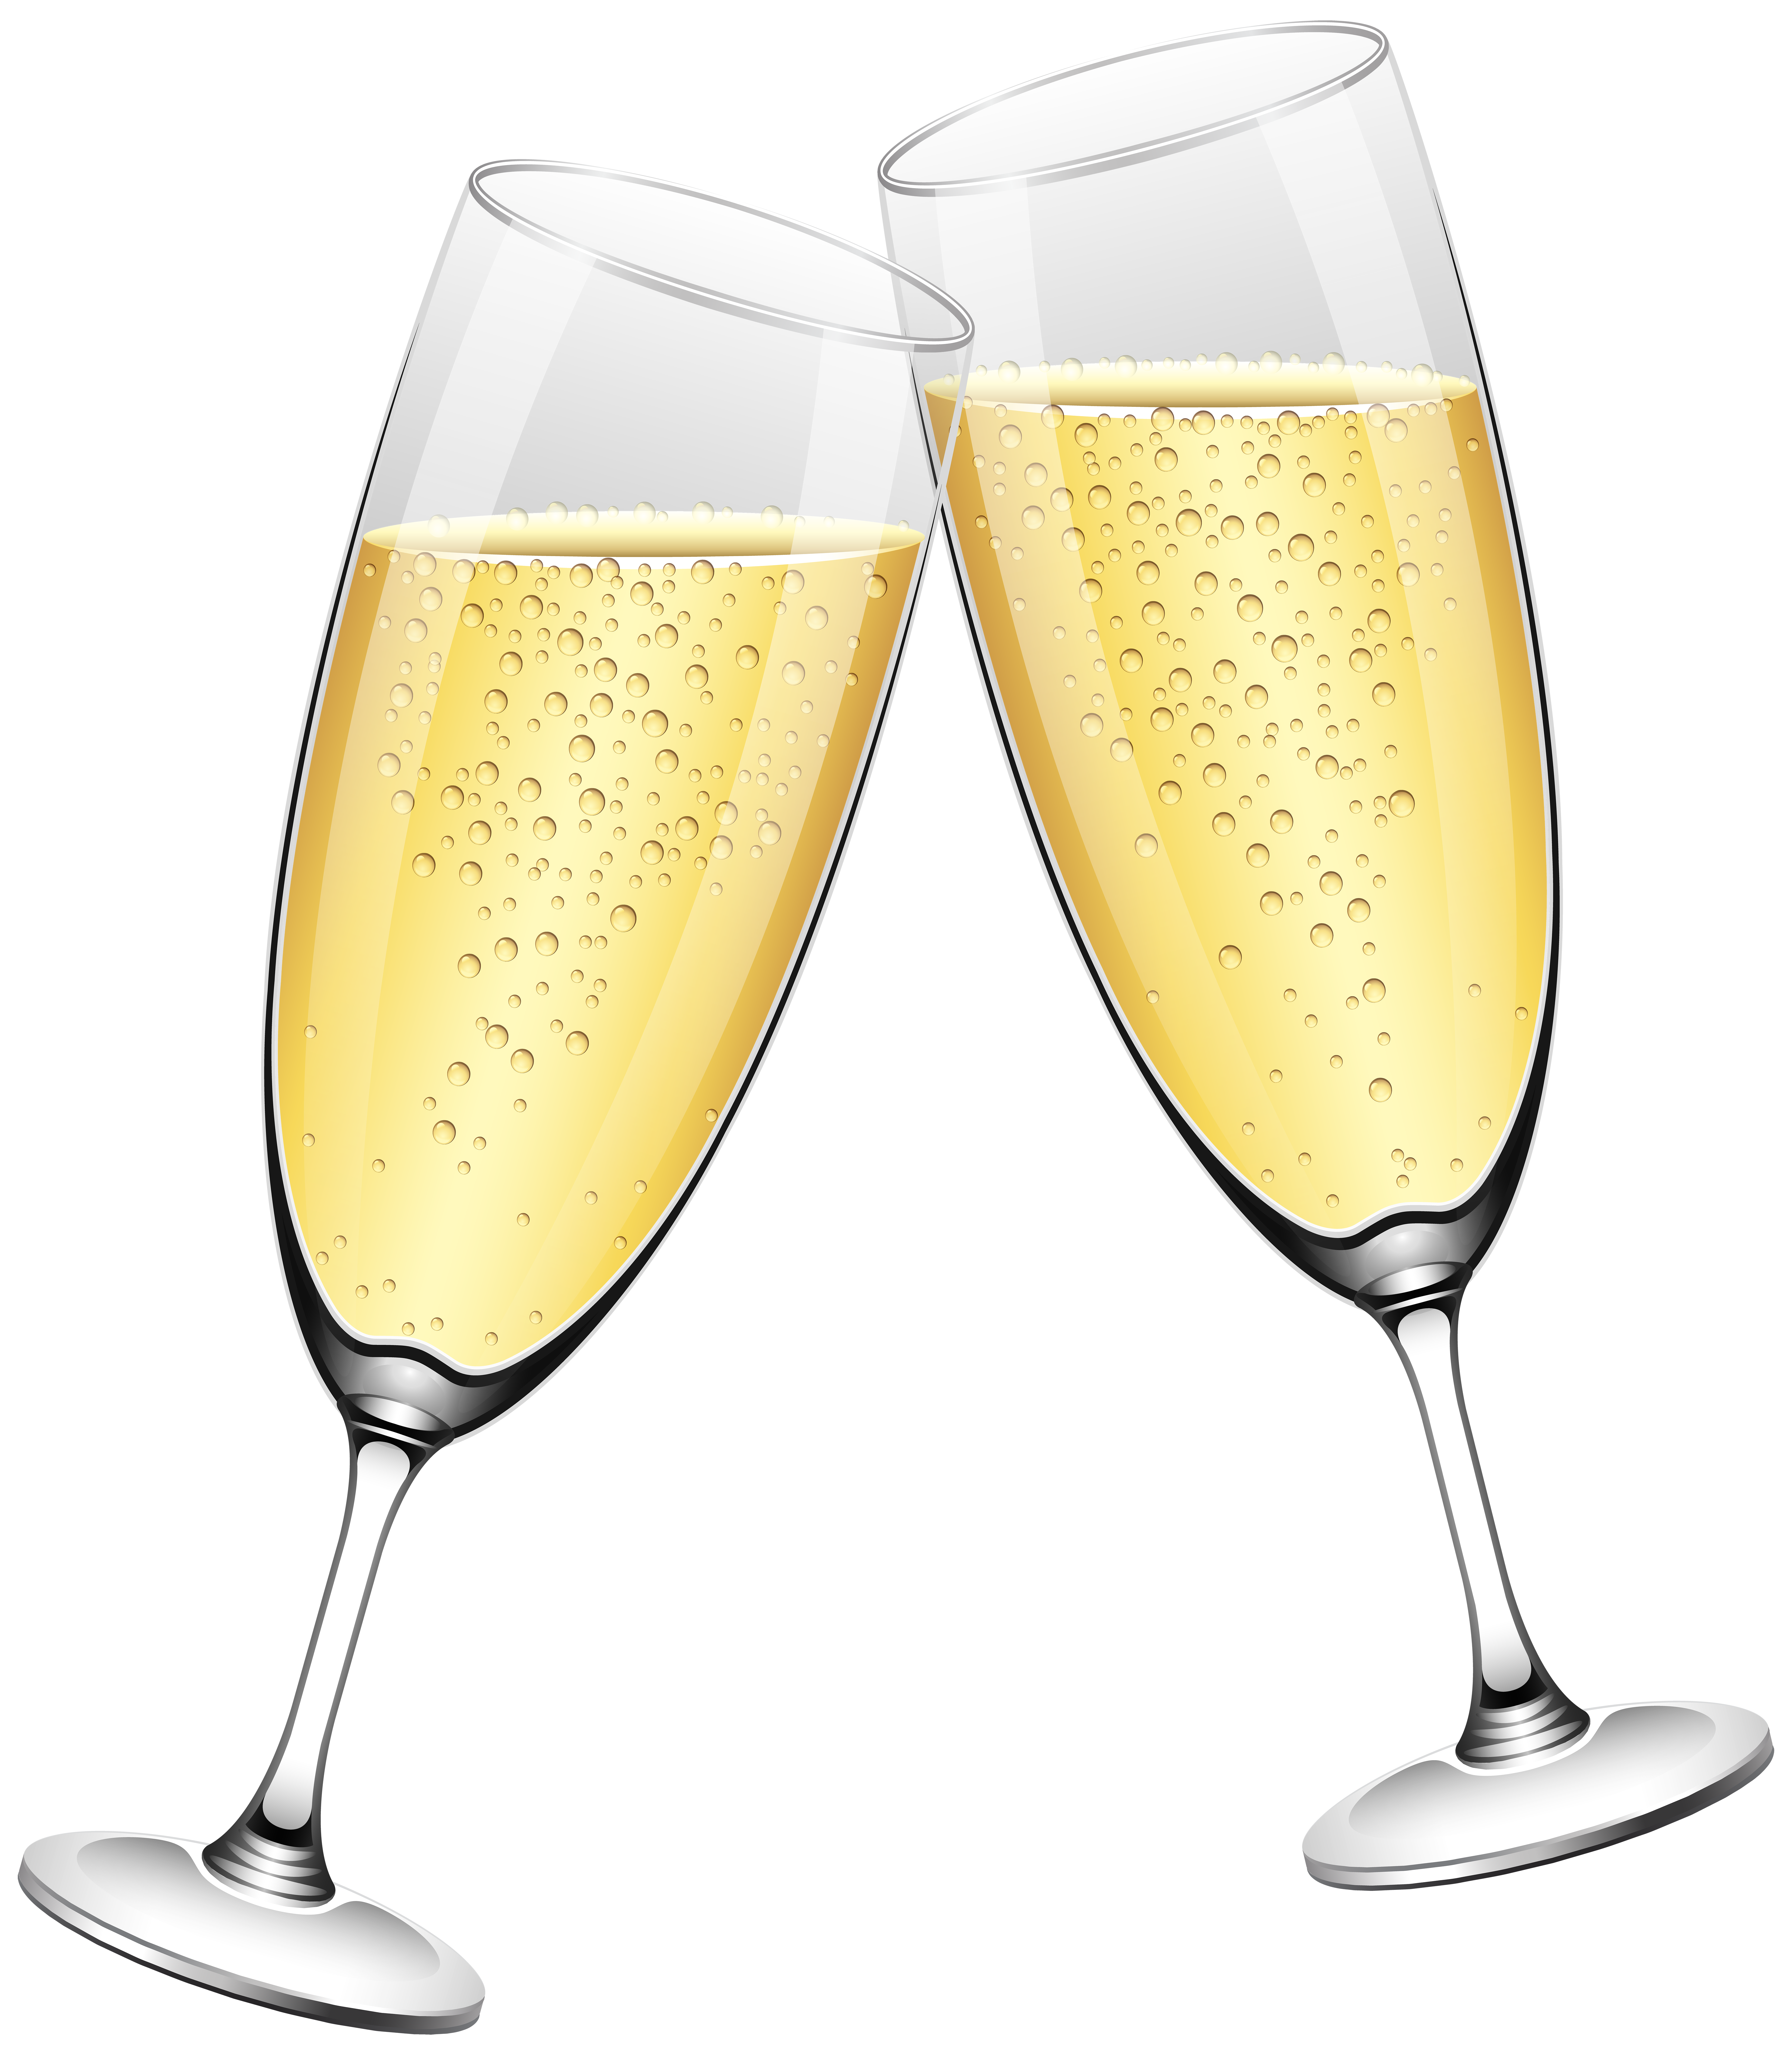 Champaign clipart wedding. Champagne glasses png clip